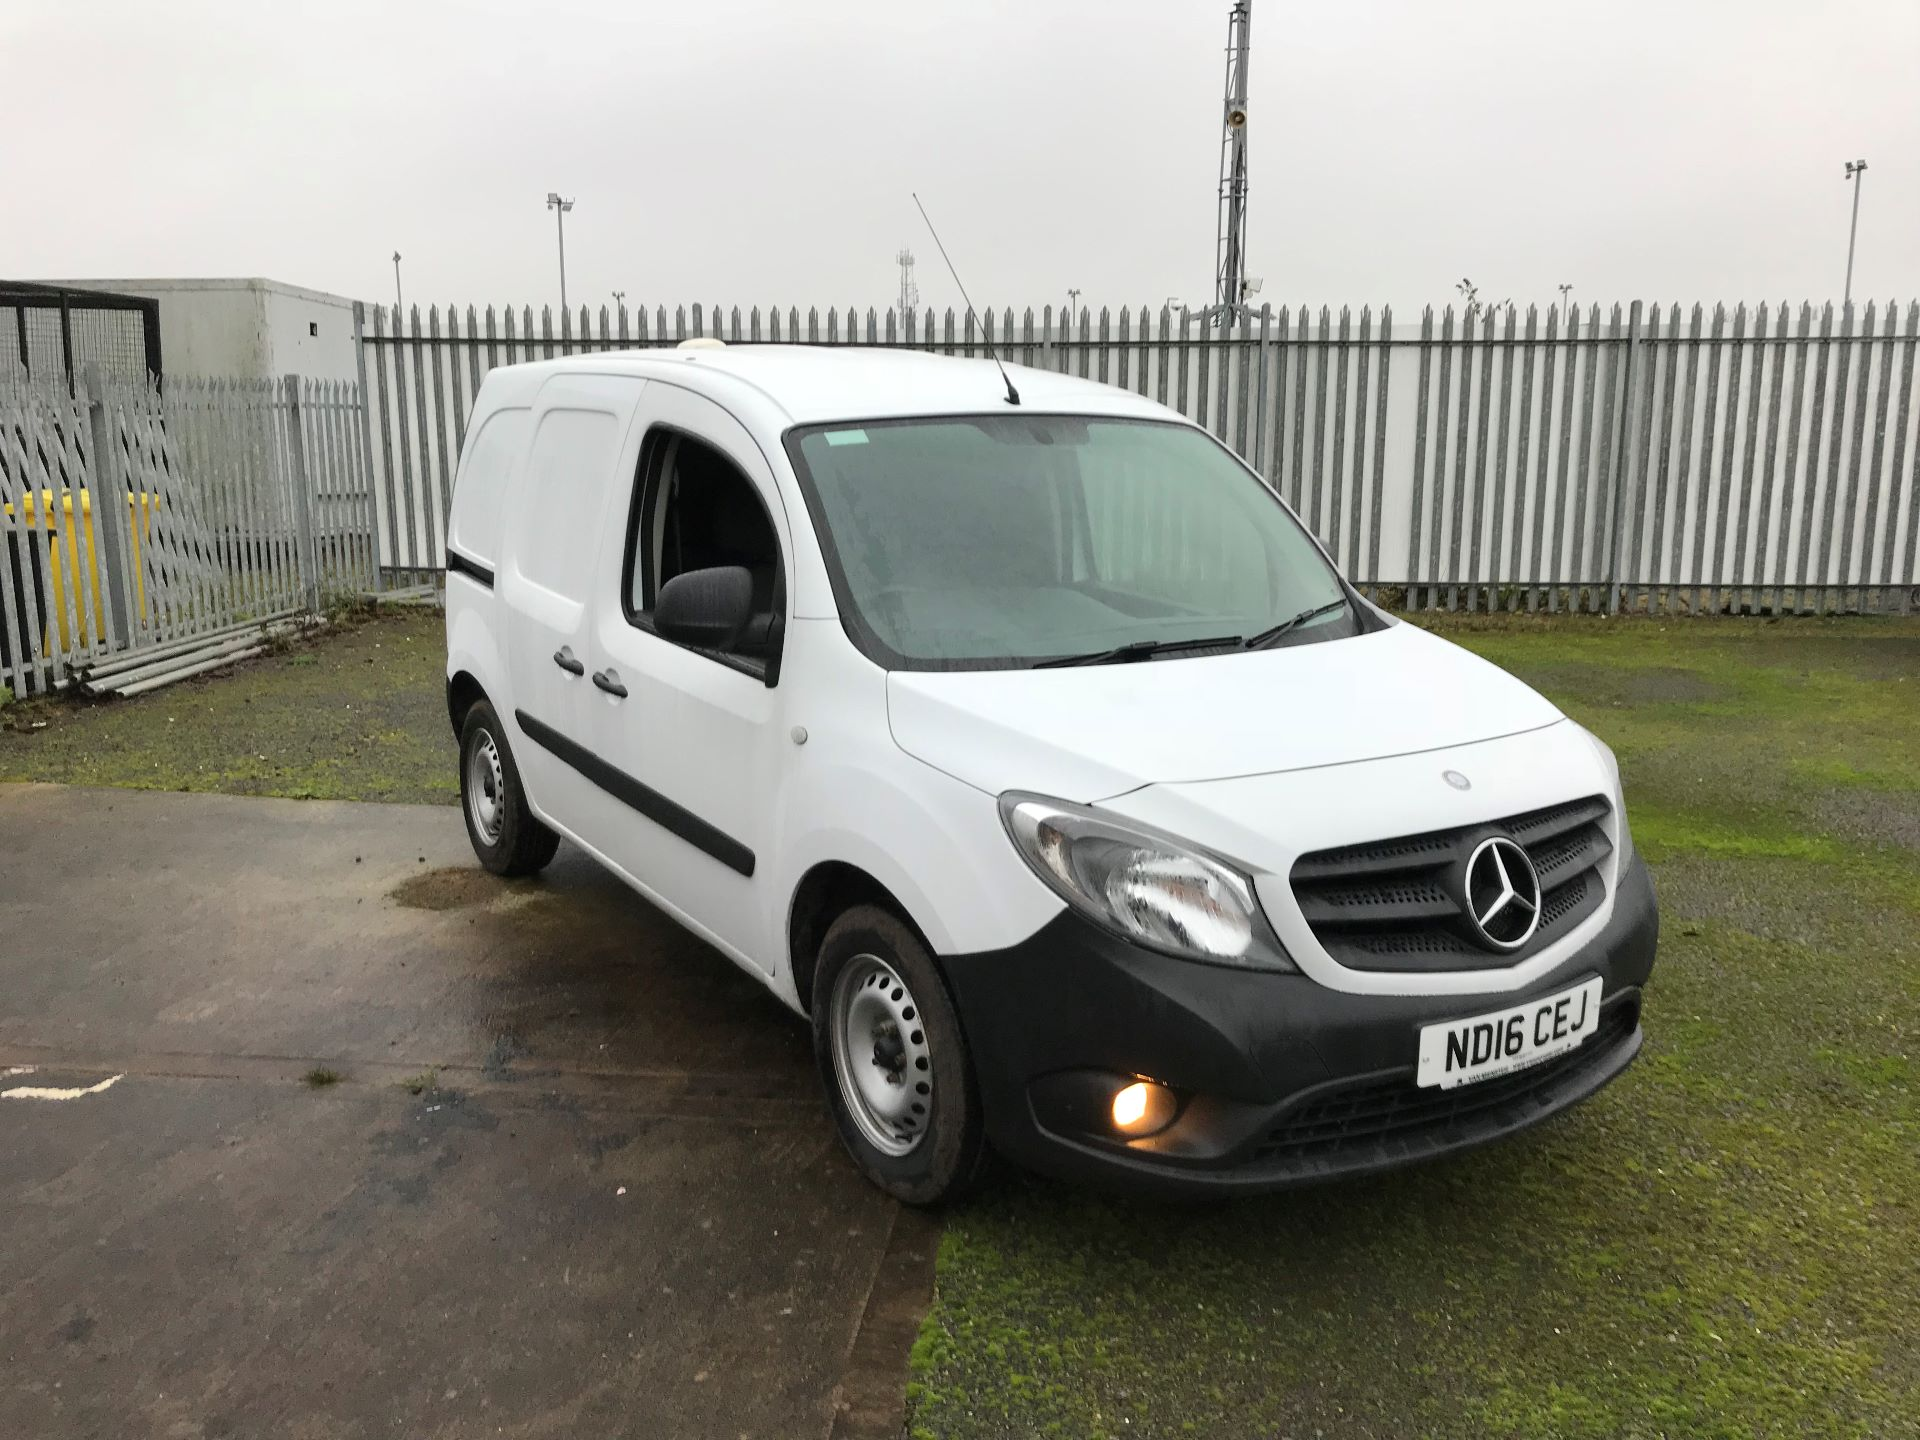 2016 Mercedes-Benz Citan 109Cdi Van (ND16CEJ)